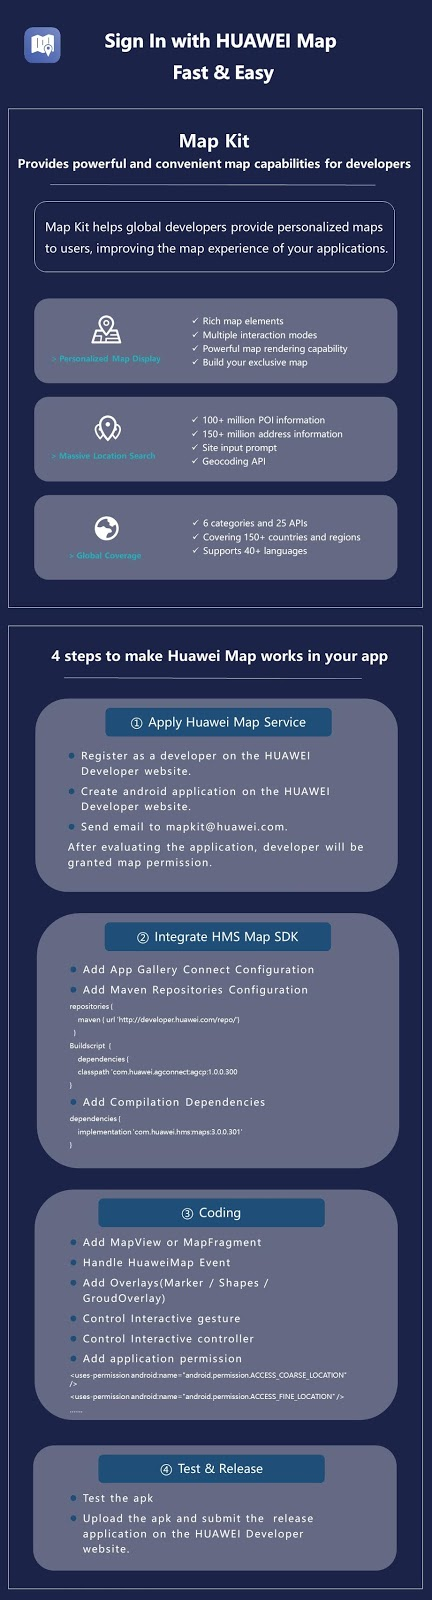 #HuaweiMapKit Is Improving Location-Based Service Experience of #HMSApps @HuaweiZA